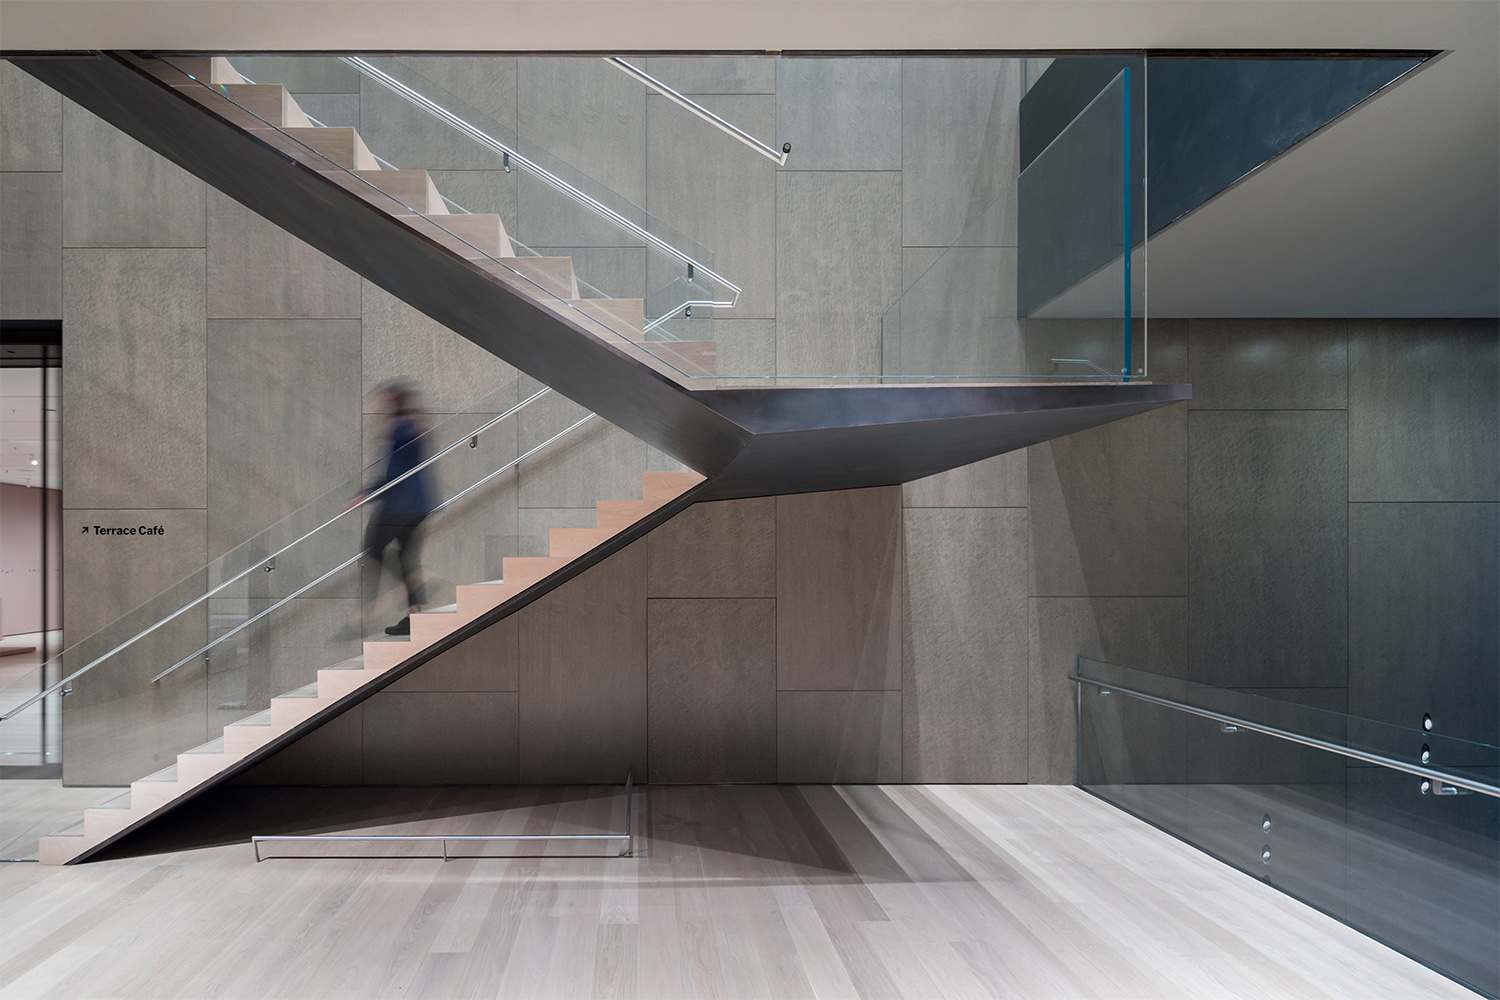 Interior view of The Museum of Modern Art, Fifth Floor Stair Photography by Iwan Baan